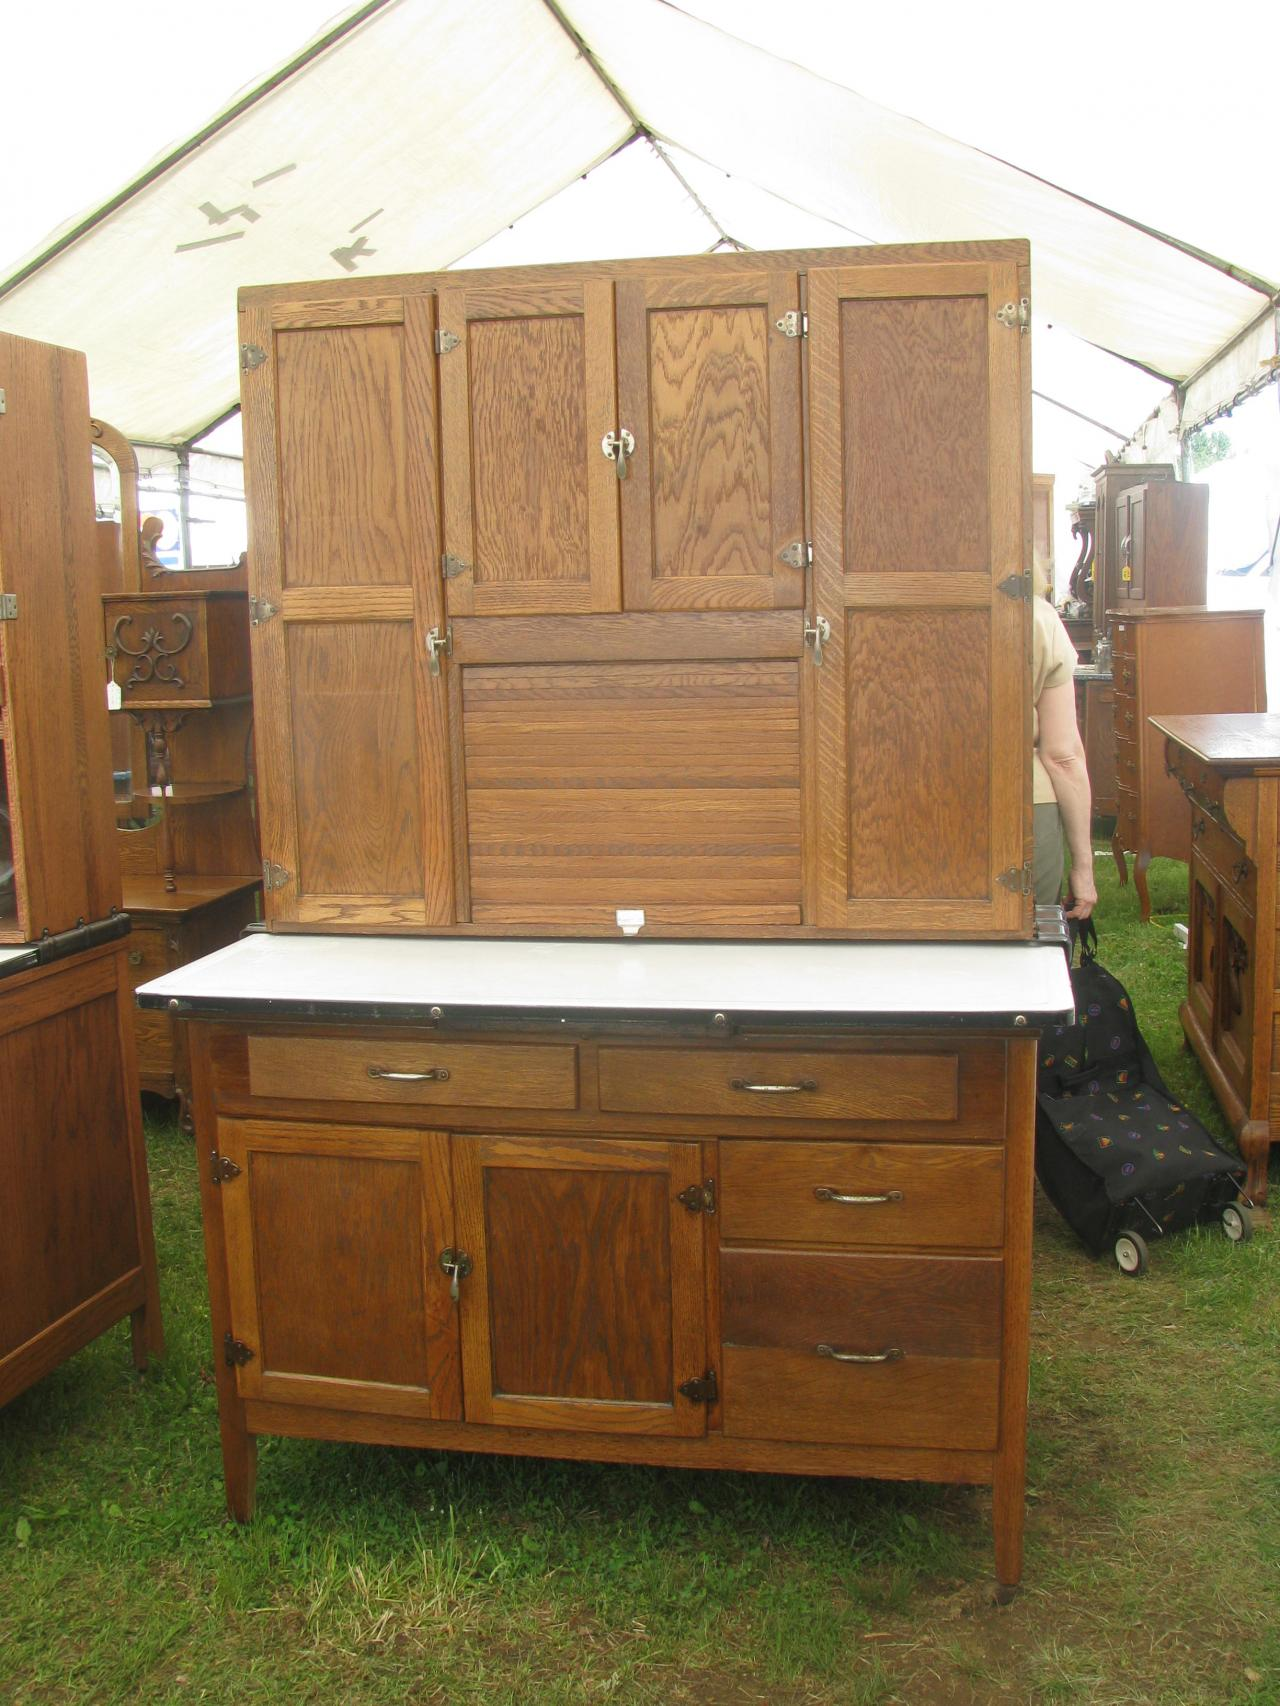 ... Sellers Hoosier Cabinet ... - Z's Antiques & Restorations - Hoosier/Baker's Cabinets Including Yet